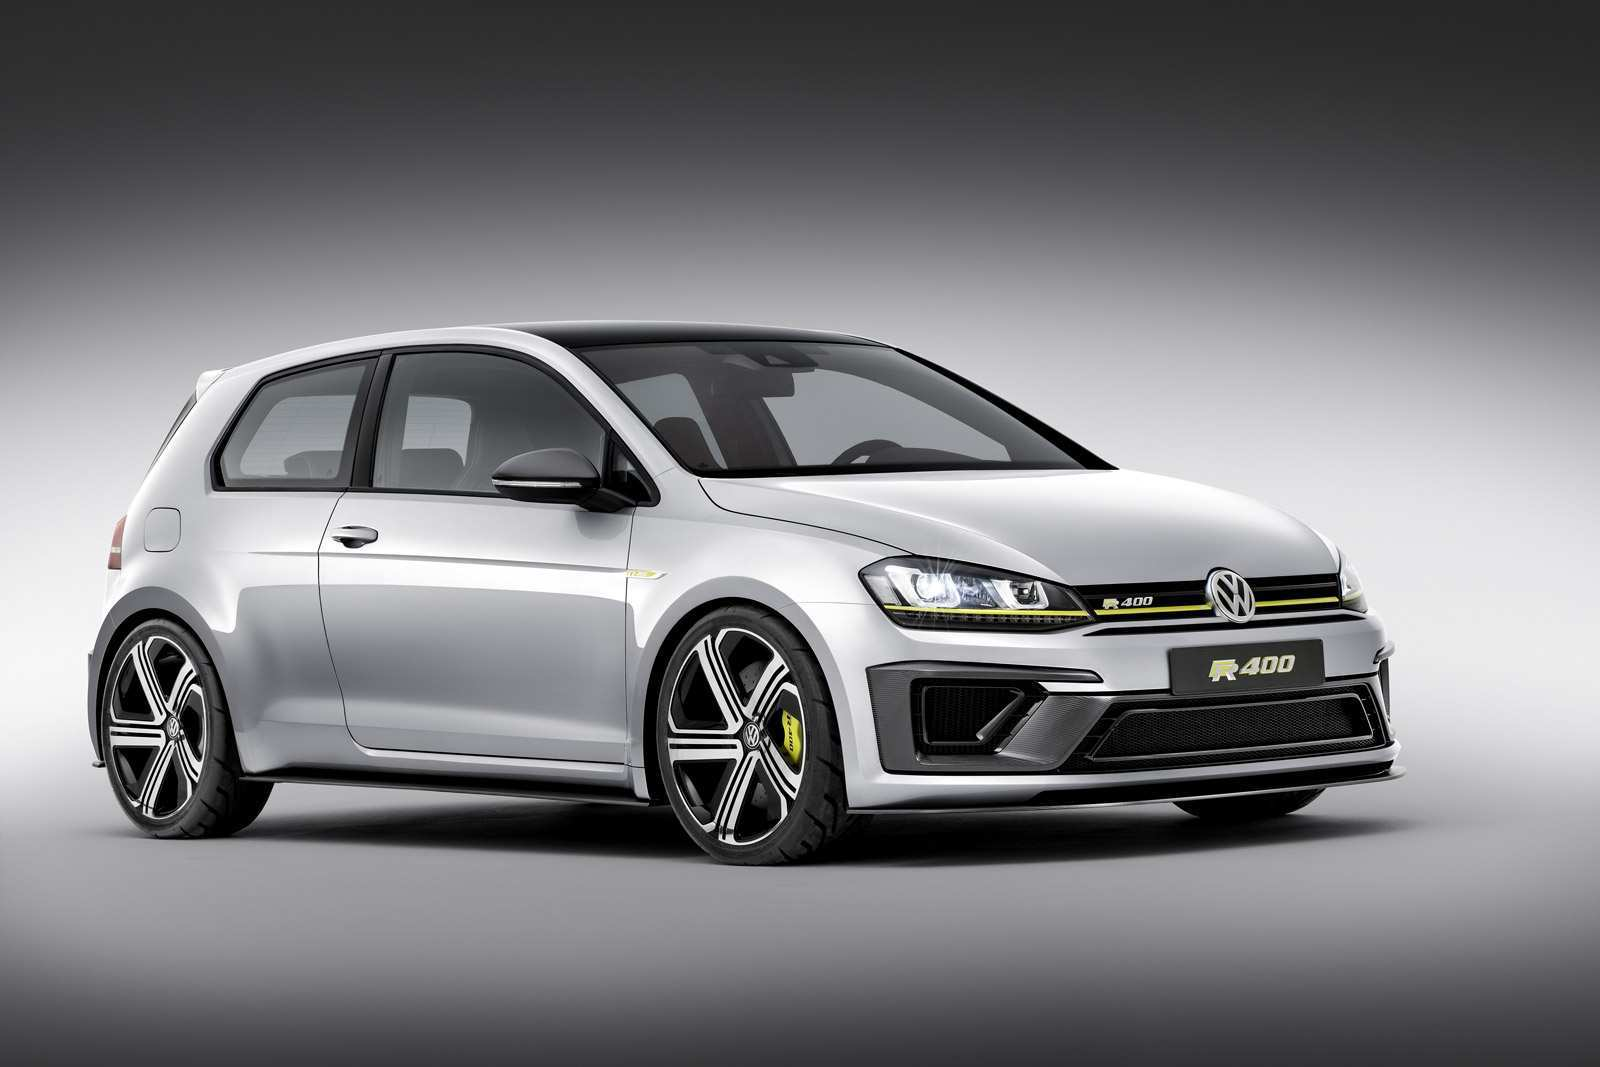 59 The Best 2020 Volkswagen Golf R Spesification